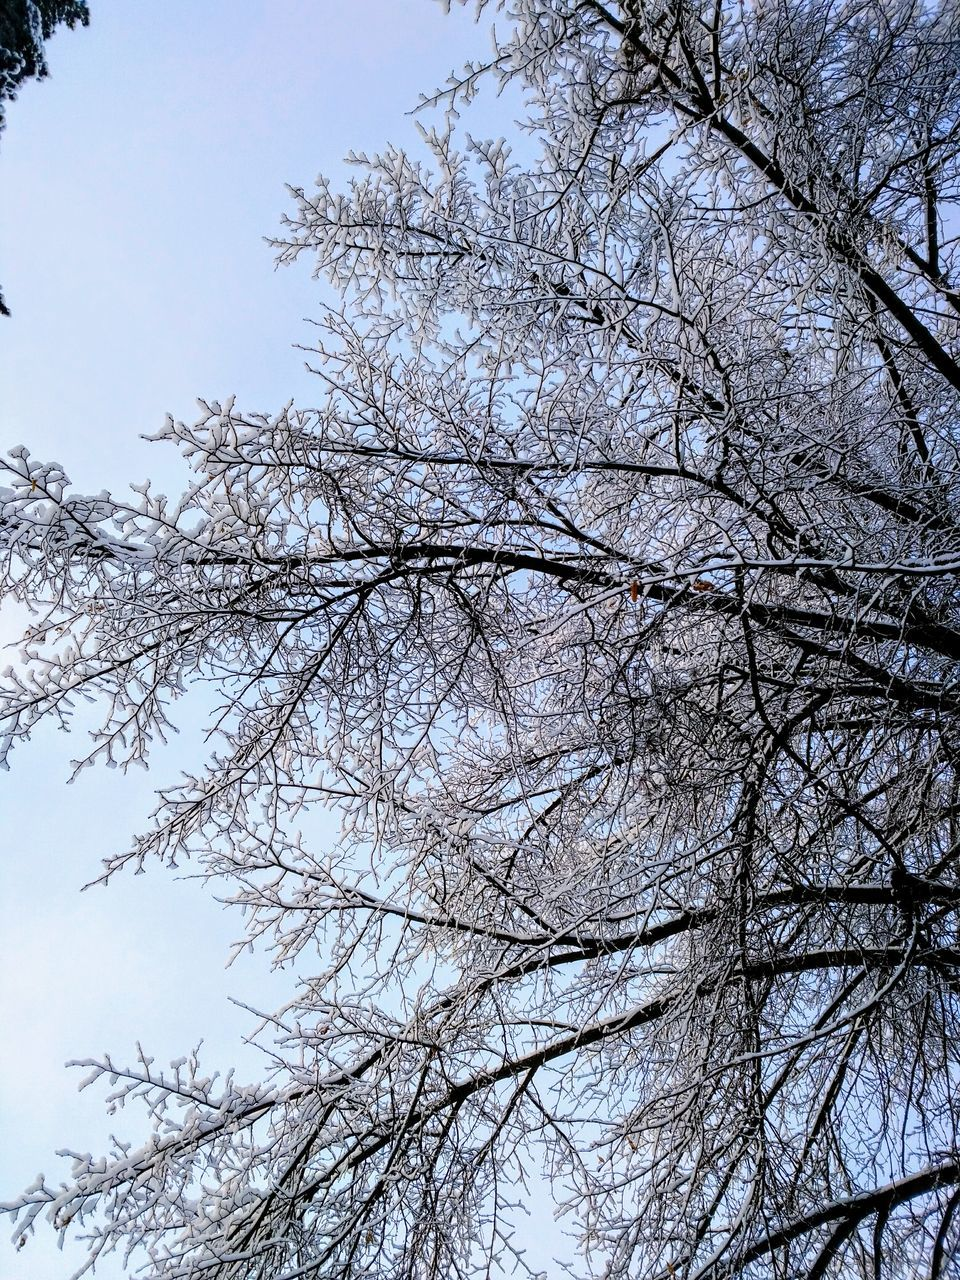 tree, branch, nature, beauty in nature, low angle view, growth, no people, flower, outdoors, day, tranquility, bare tree, sky, springtime, clear sky, winter, scenics, fragility, freshness